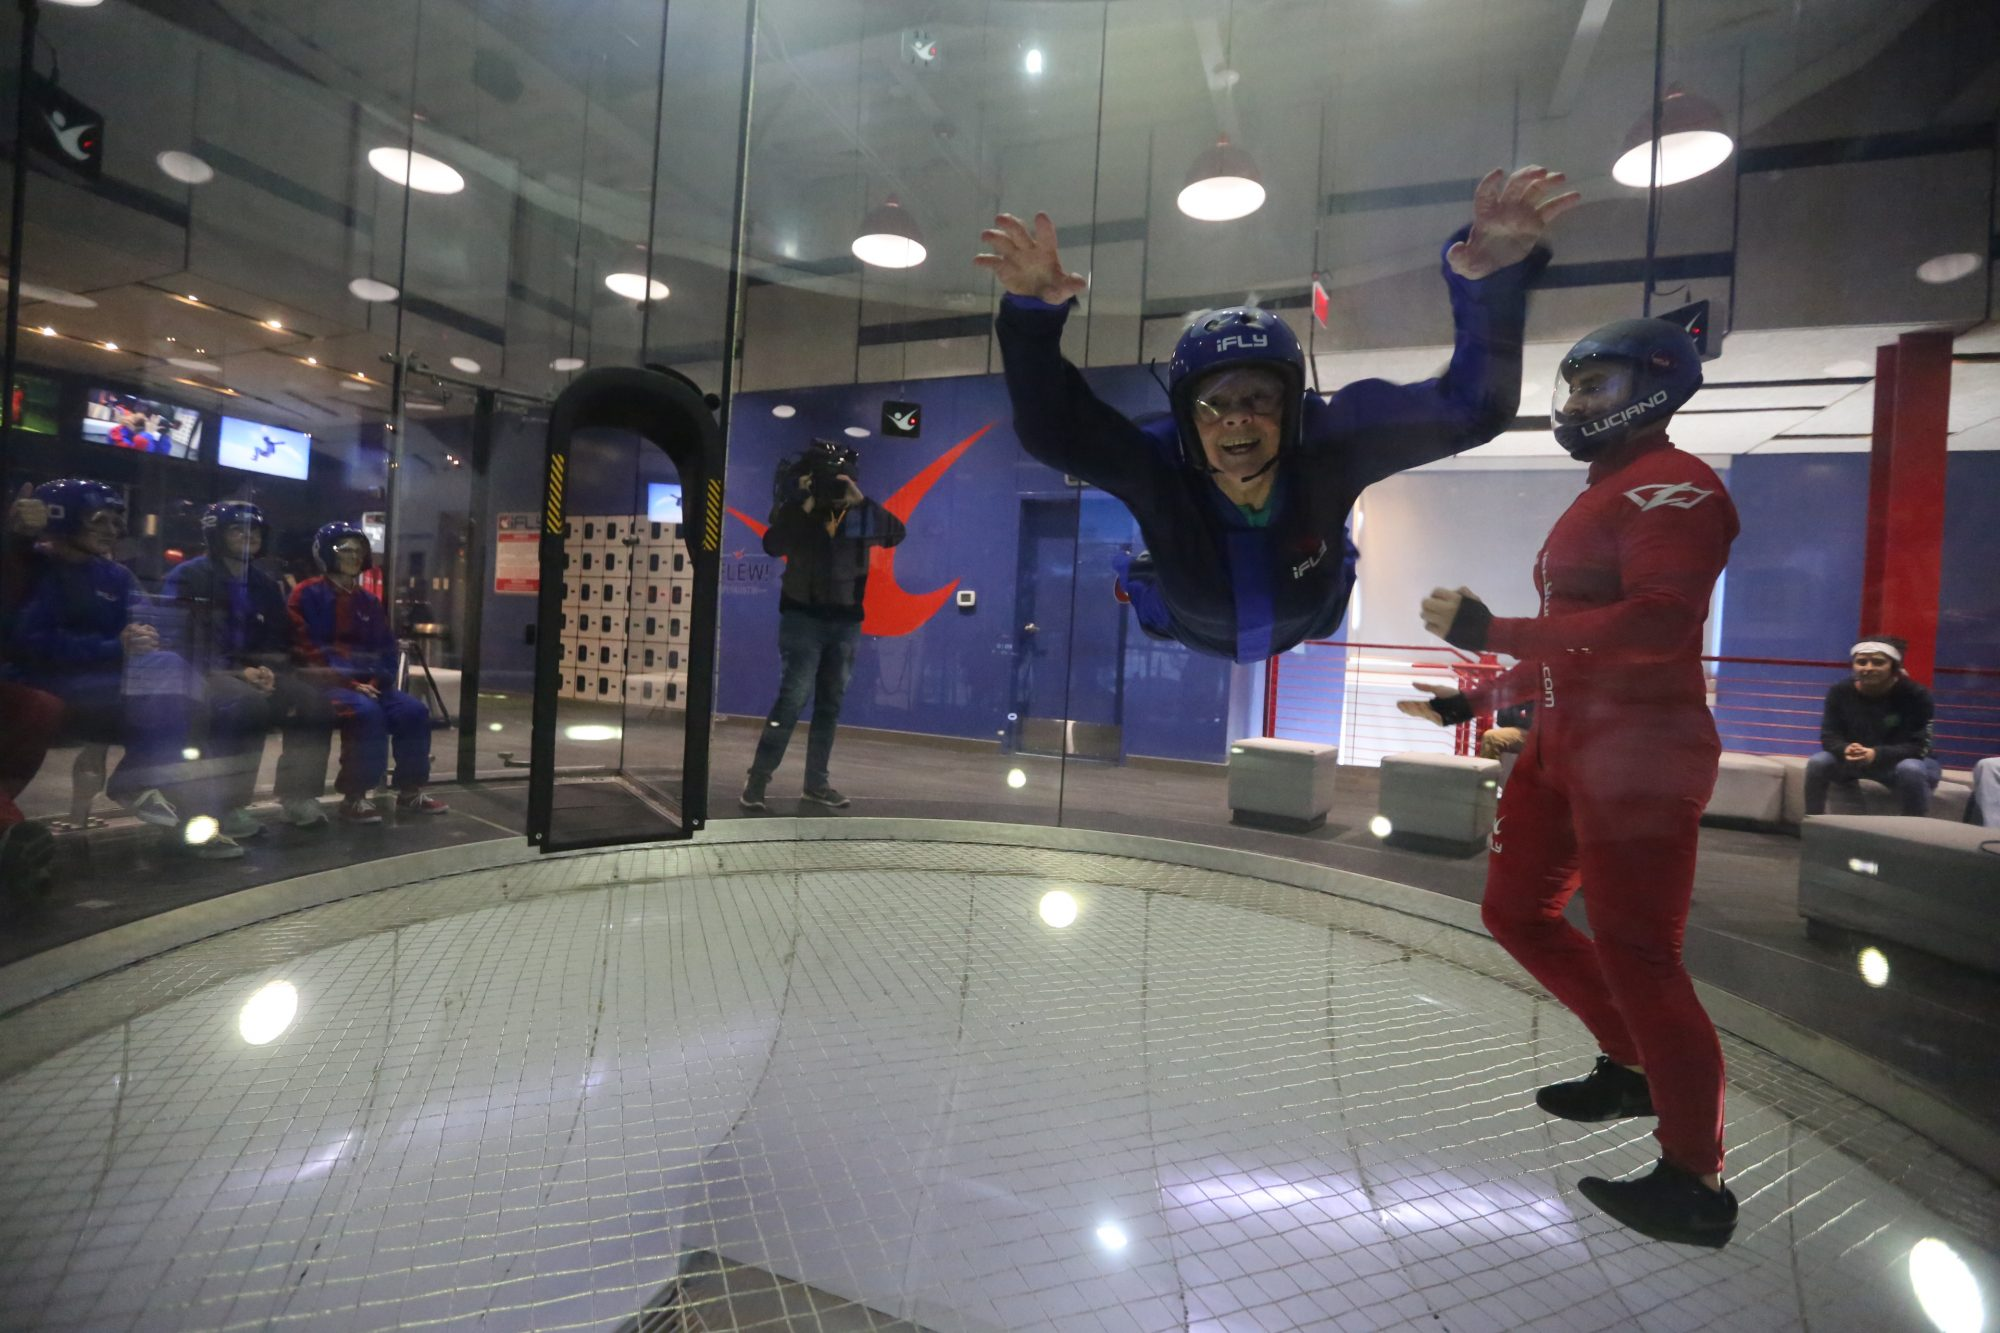 Skydiving for her 92nd birthday